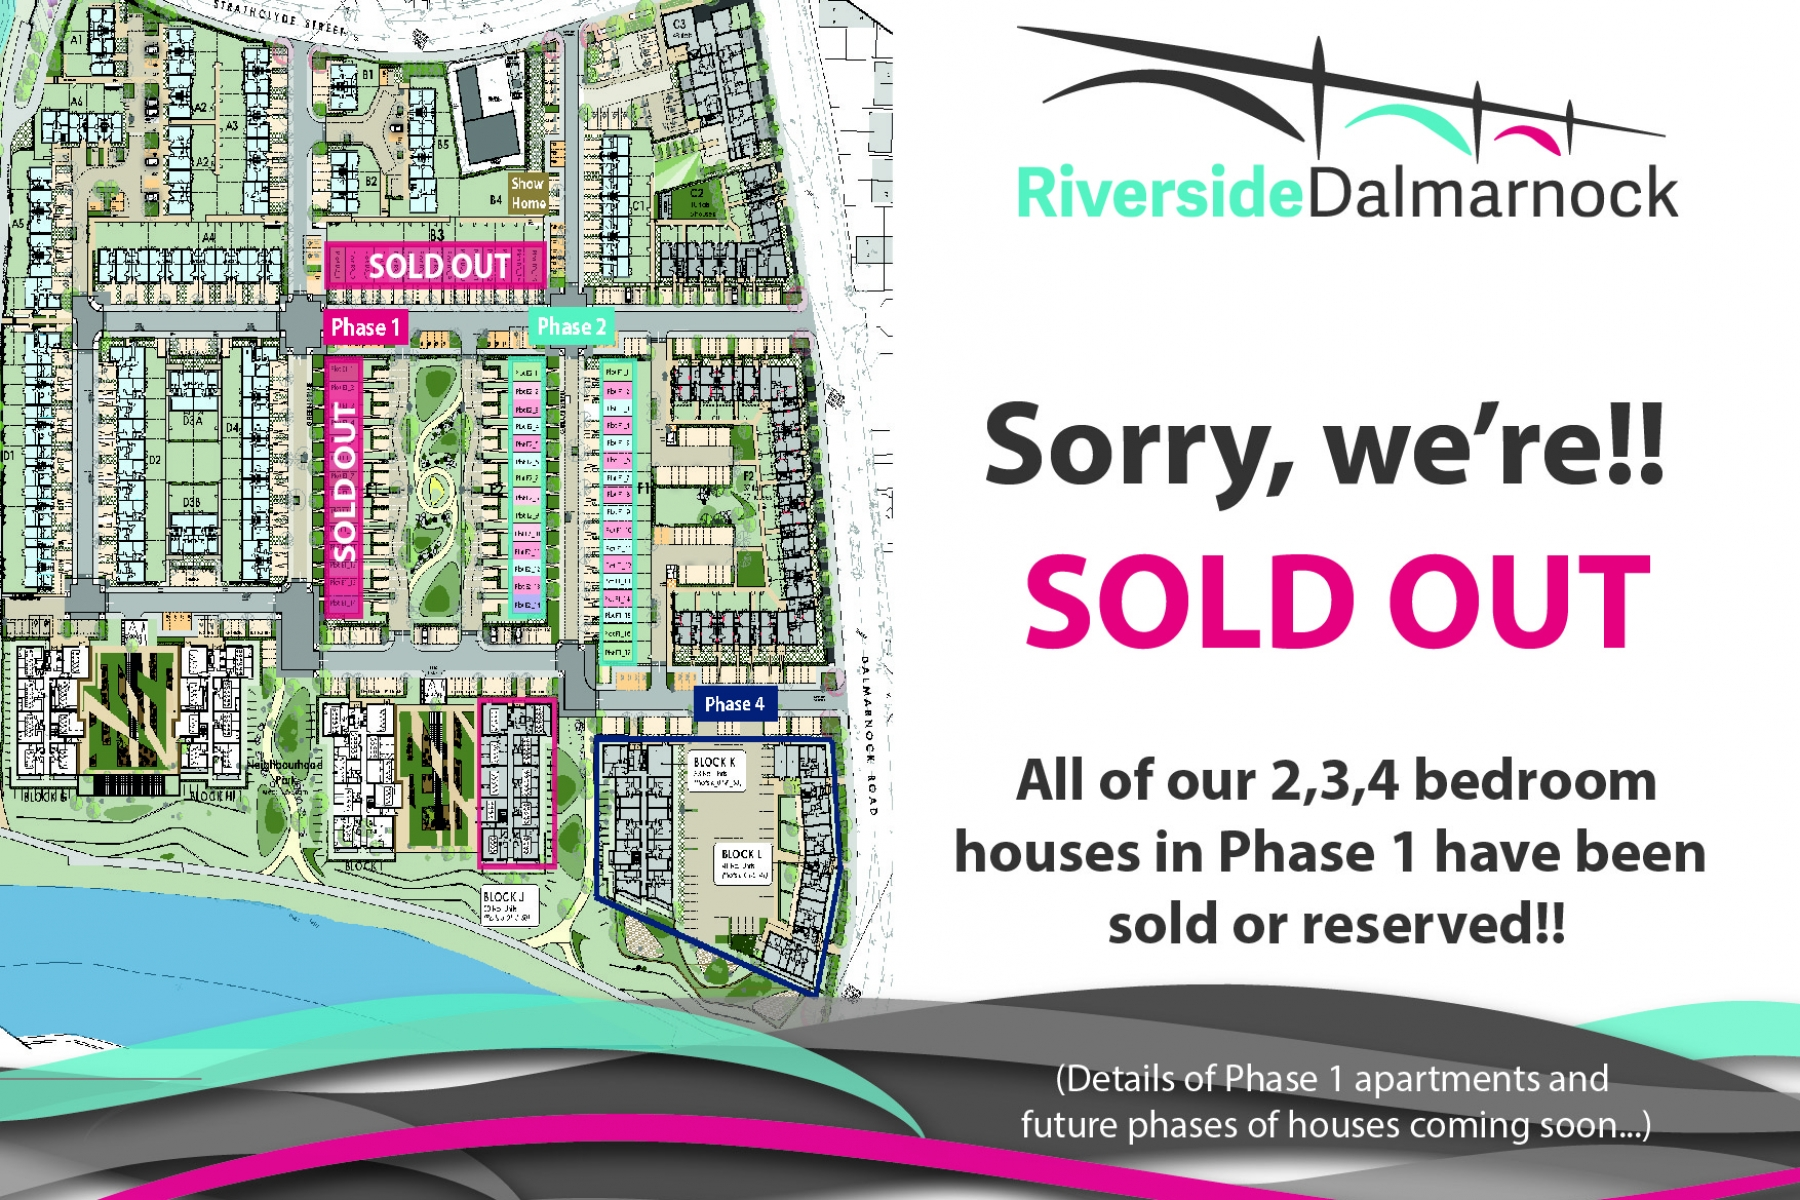 Phase 1 Homes Sold Out